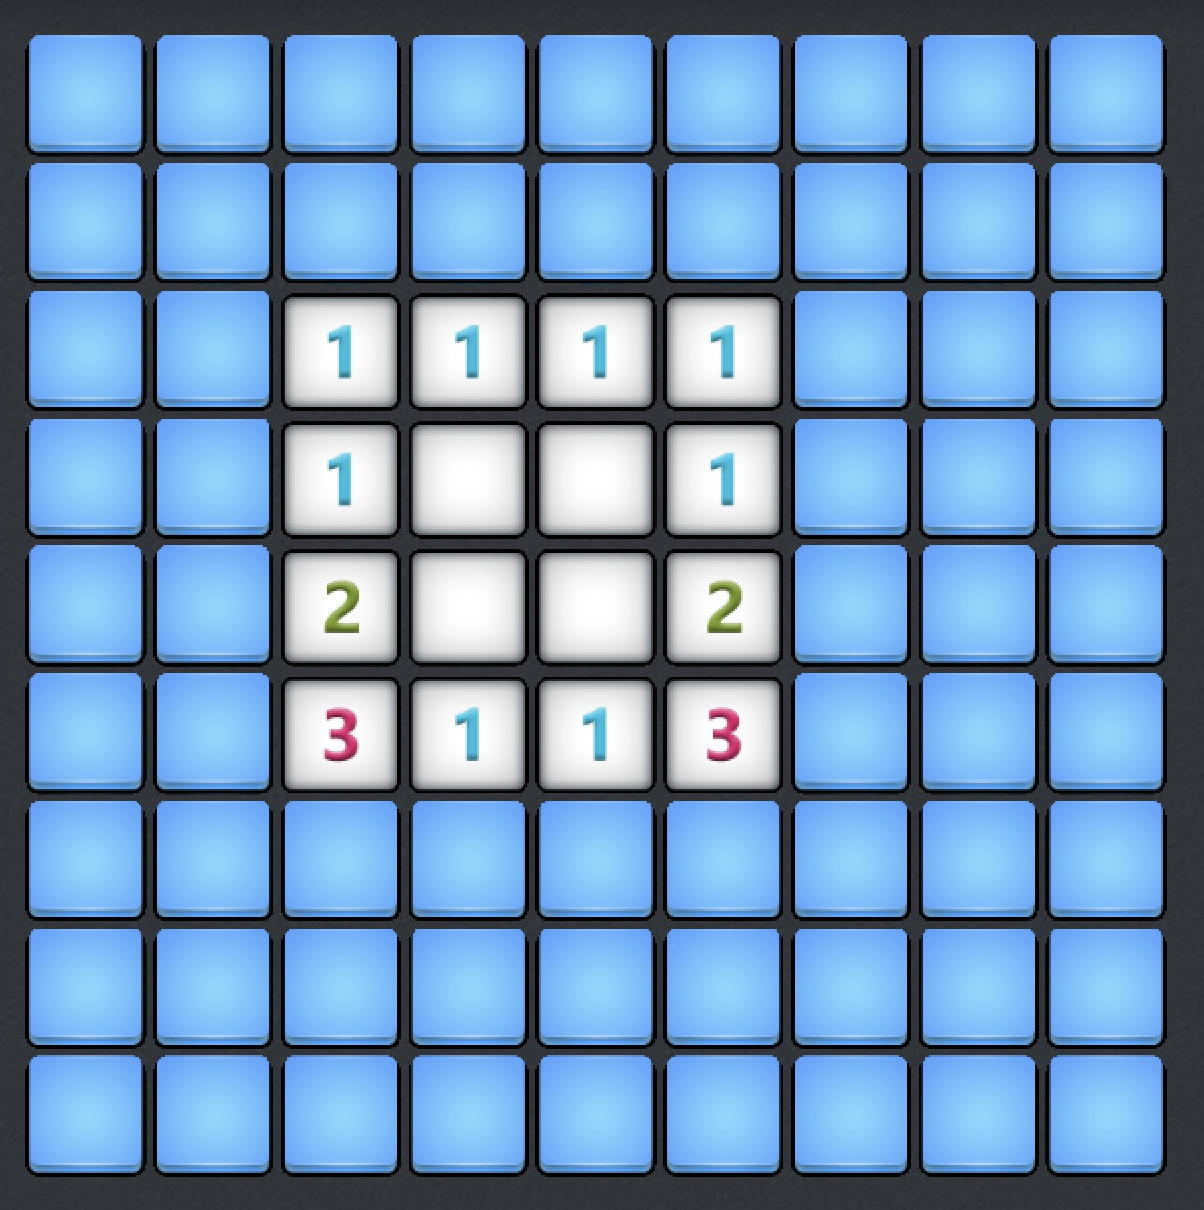 microsoft minesweeper win10 - dense challenging grid